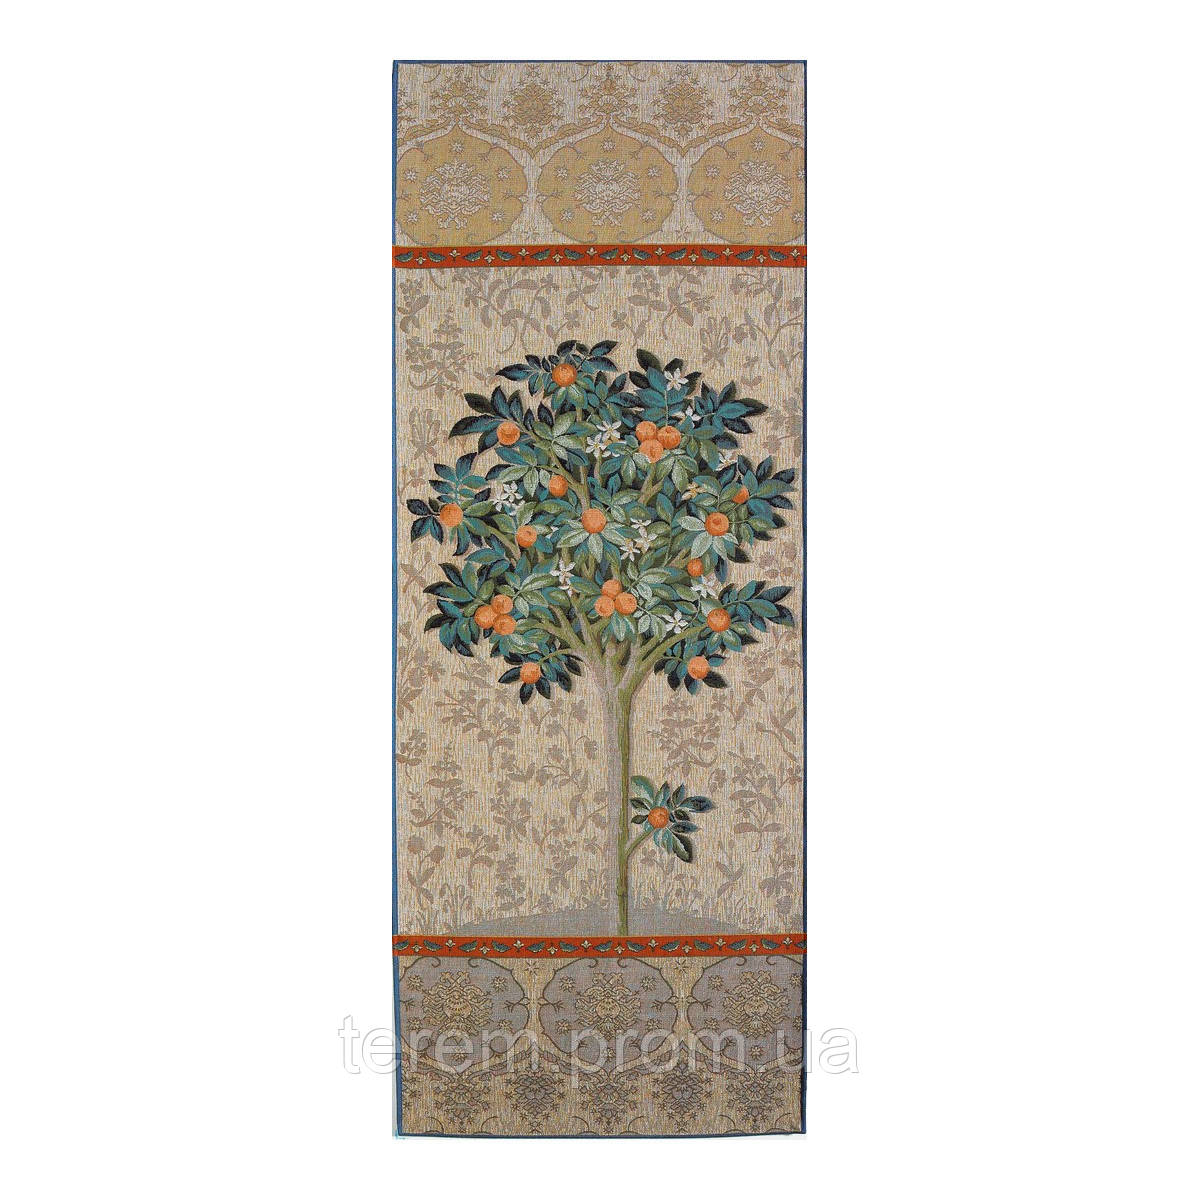 Гобеленовая картина Art de lys Natural orange tree 187x75 8449 без подкладки